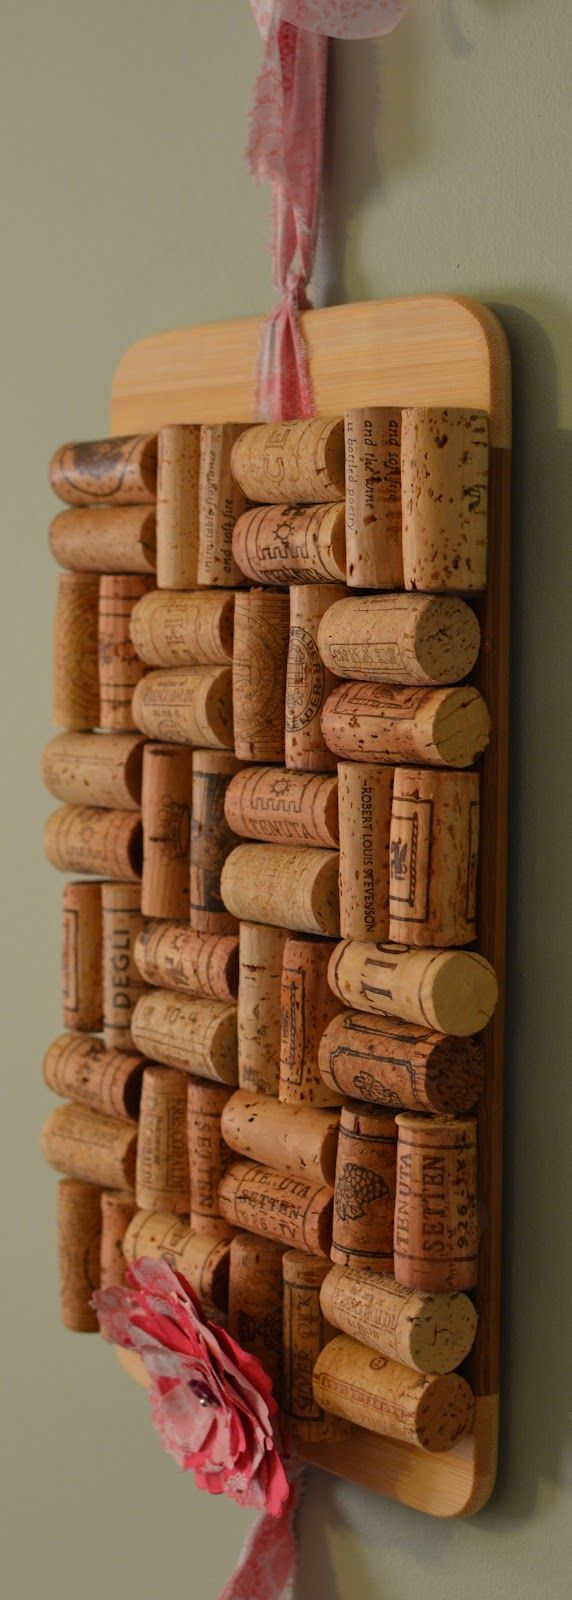 wine cork projects hofkissed reduce amp reuse wine cork board my work 31049